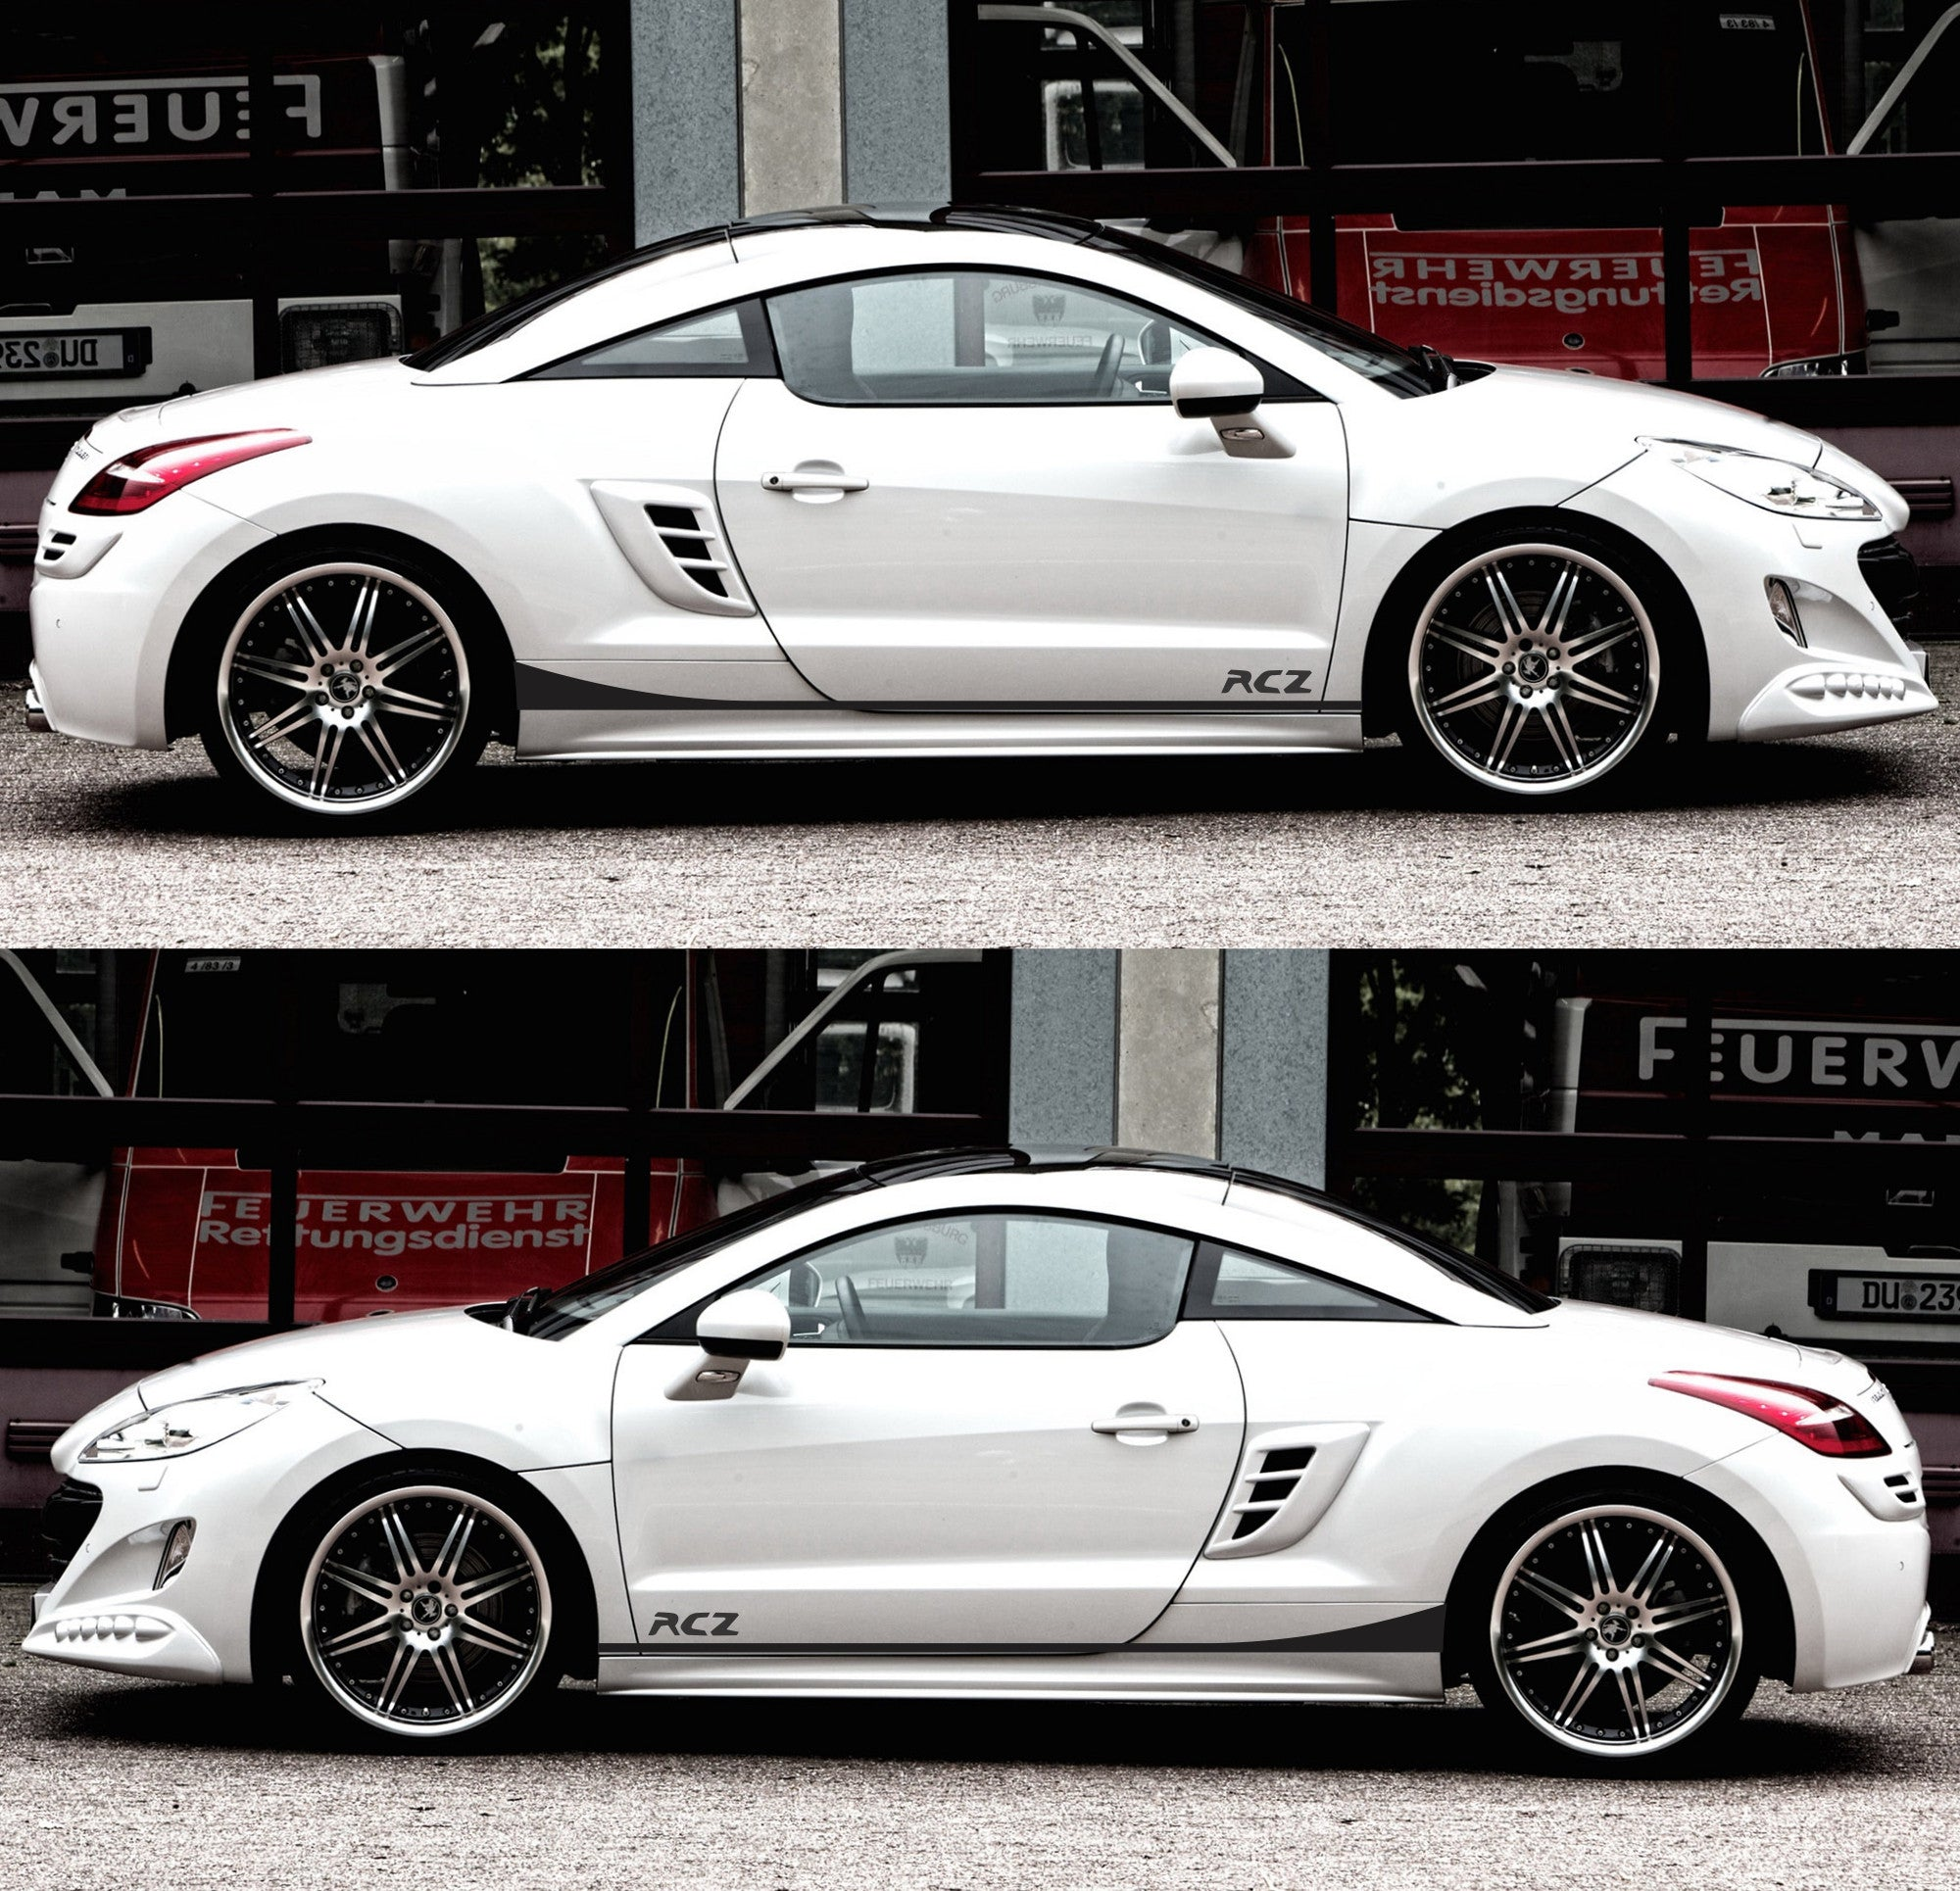 peugeot rcz france turbo coupe racing sticker decal v2. Black Bedroom Furniture Sets. Home Design Ideas